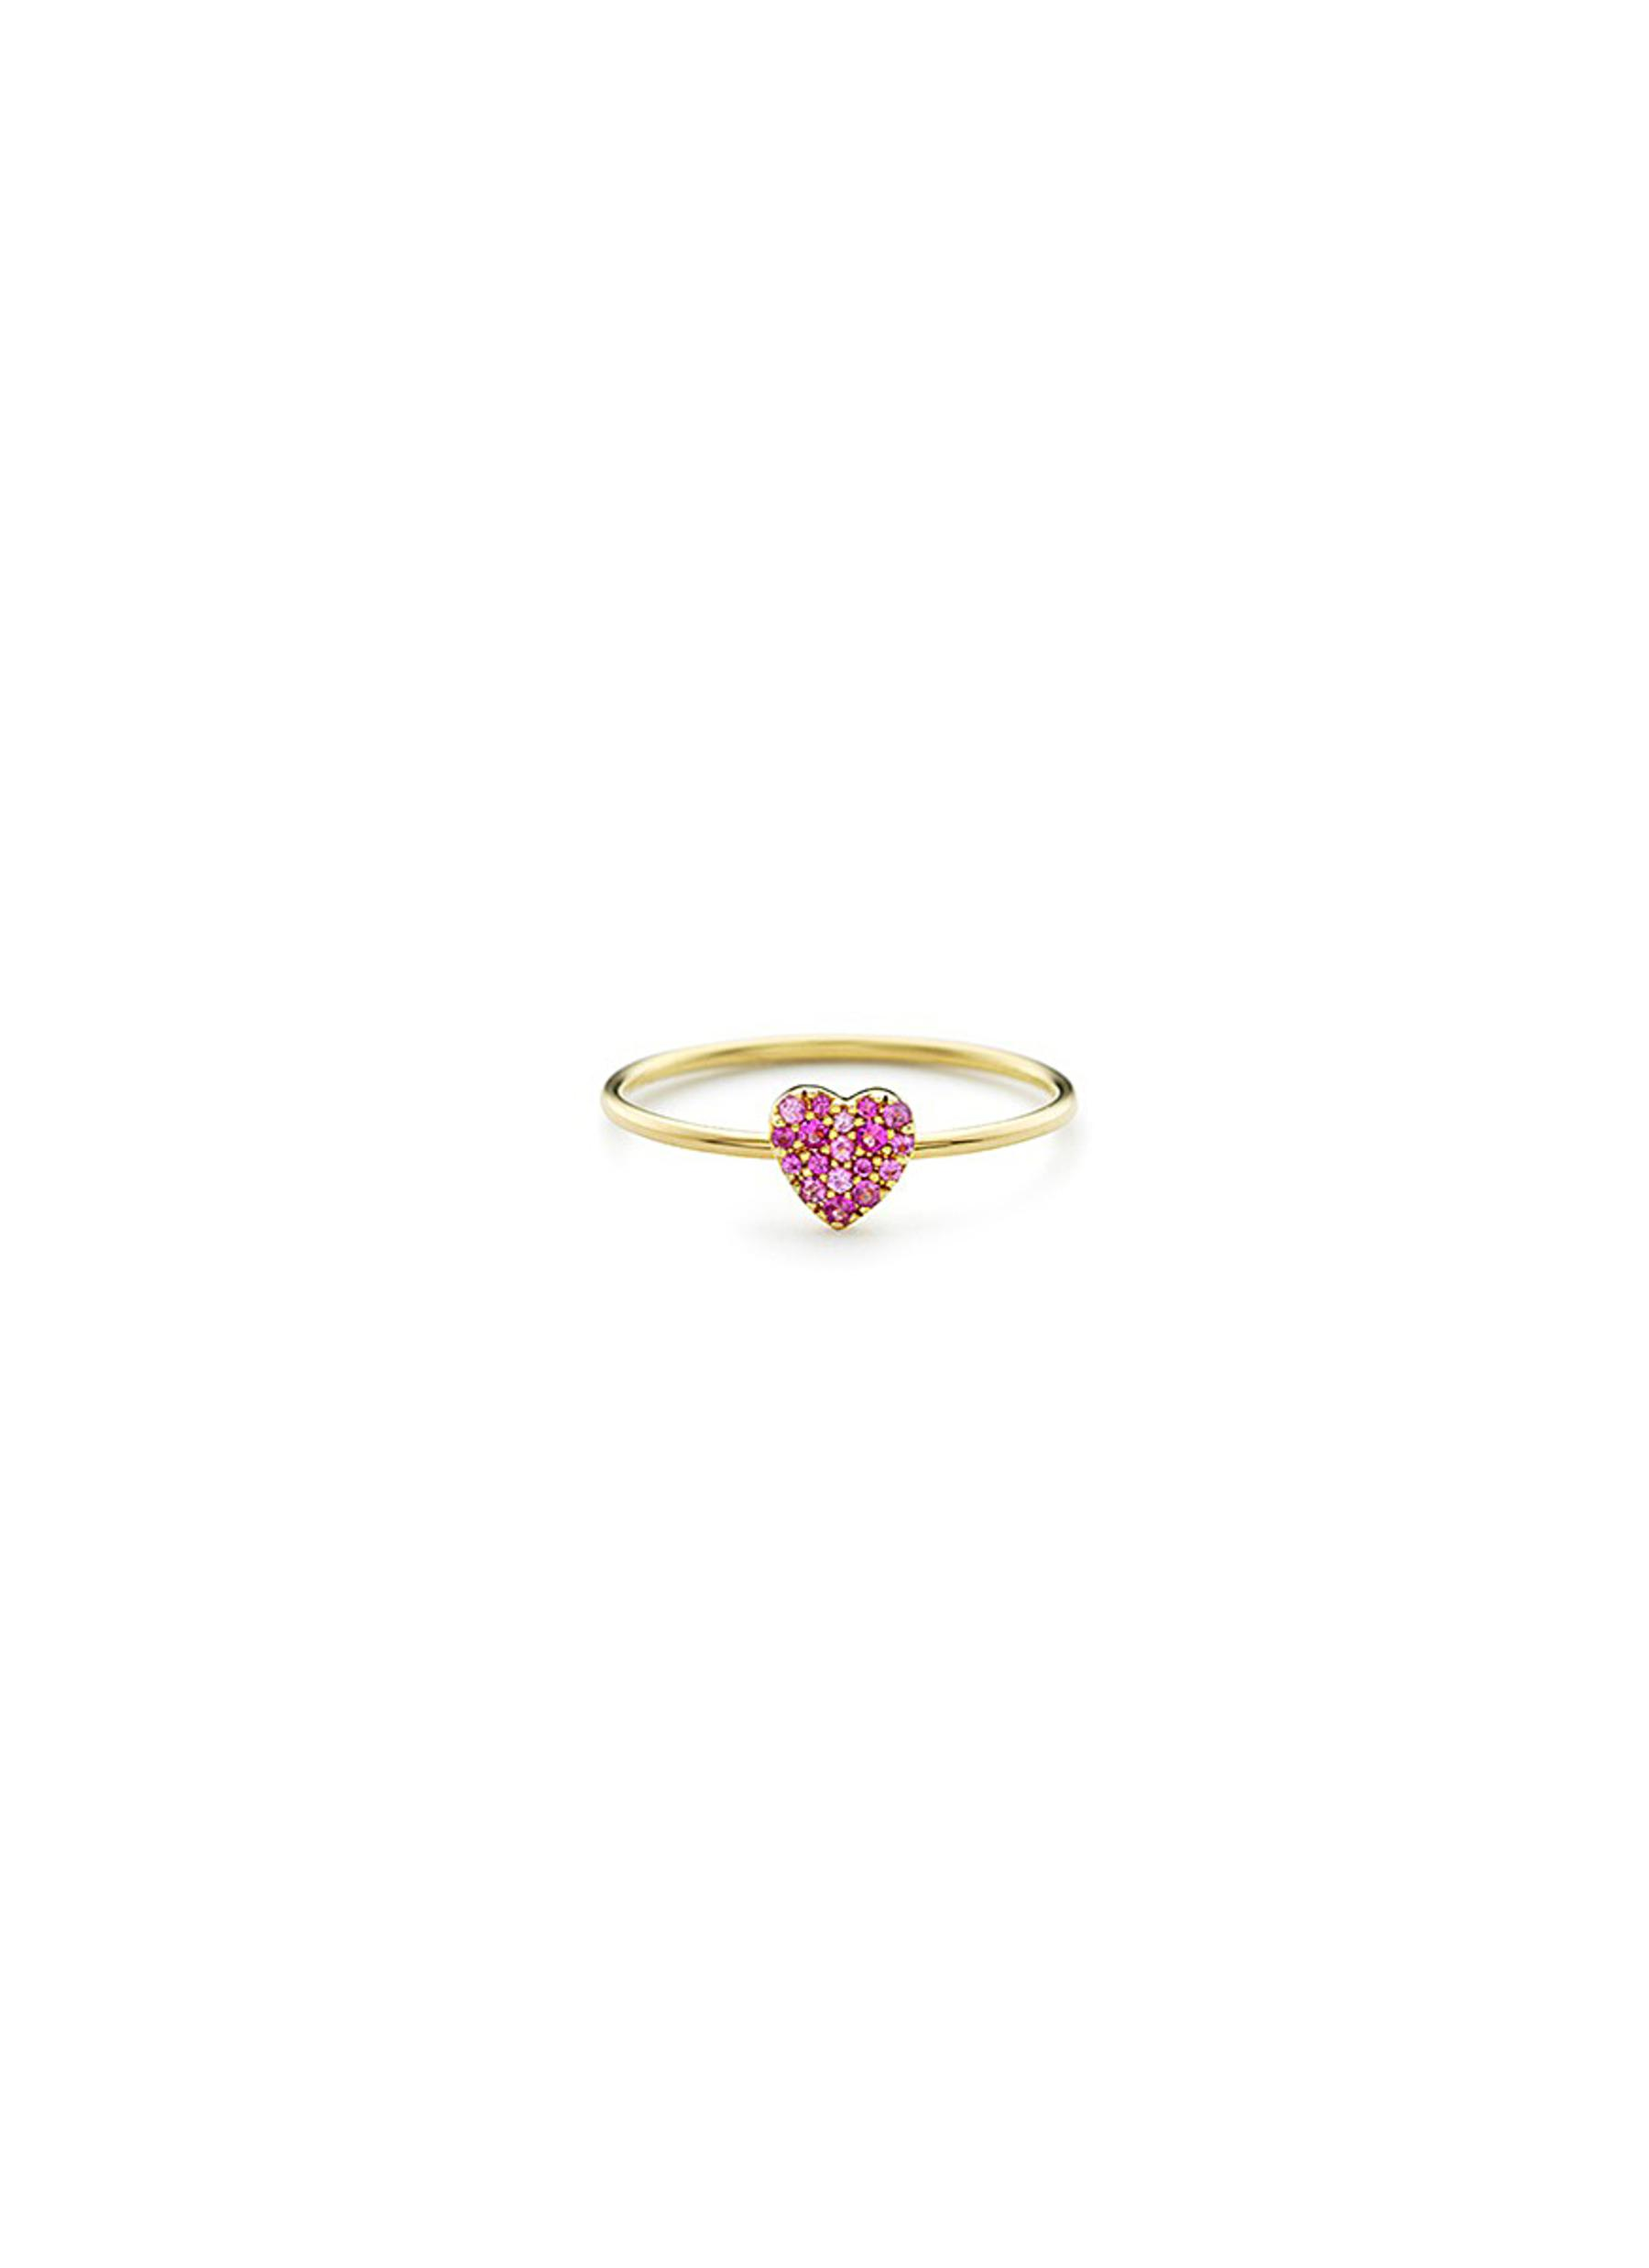 Sapphire 18k yellow gold heart charm ring by Loquet London